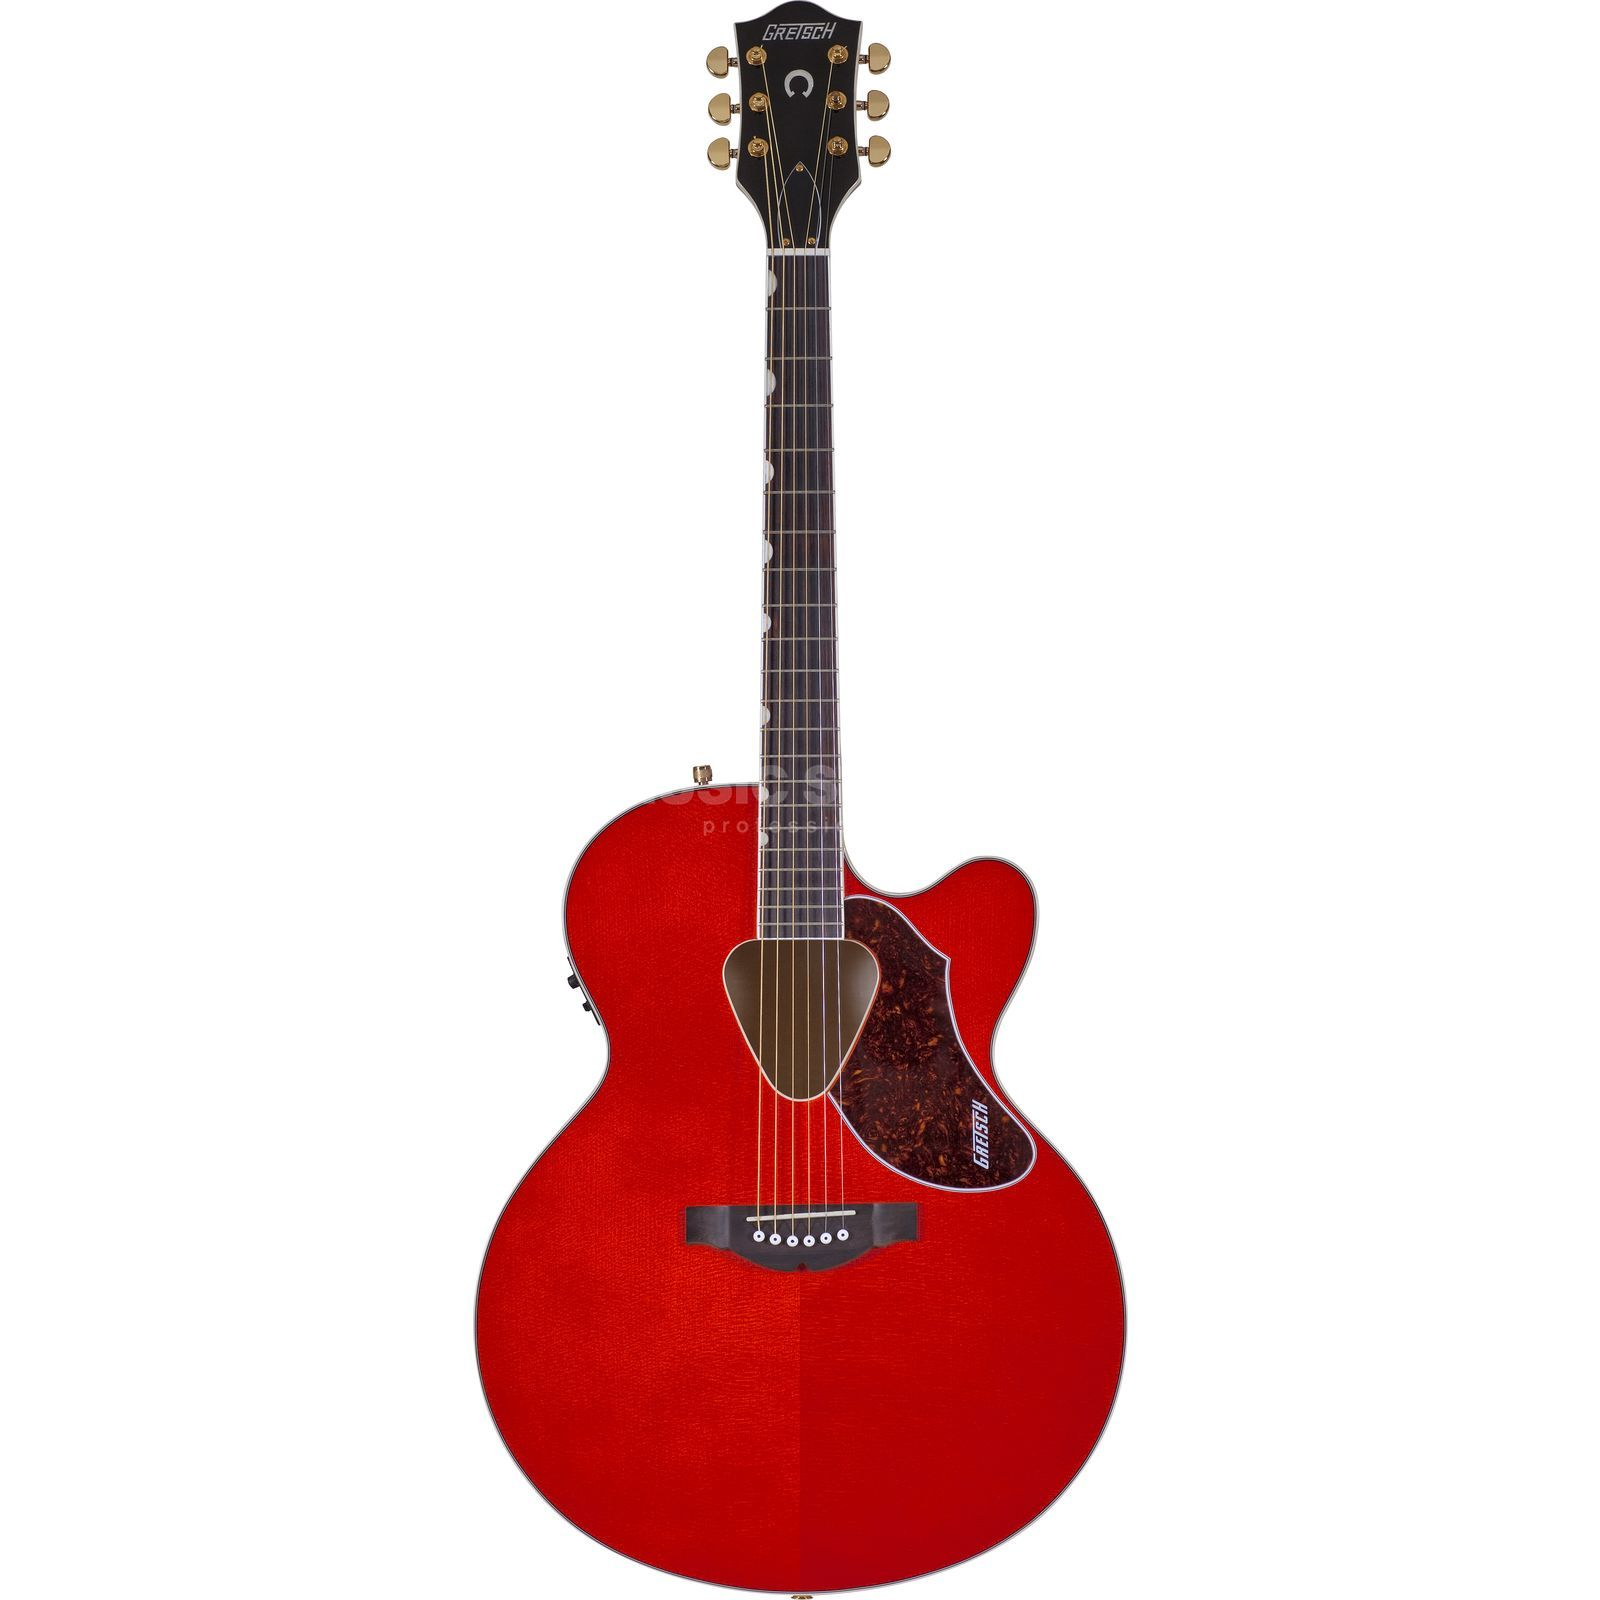 Gretsch G5022CE Rancher Jumbo Cutaway Electric, Savannah Sunset Produktbild